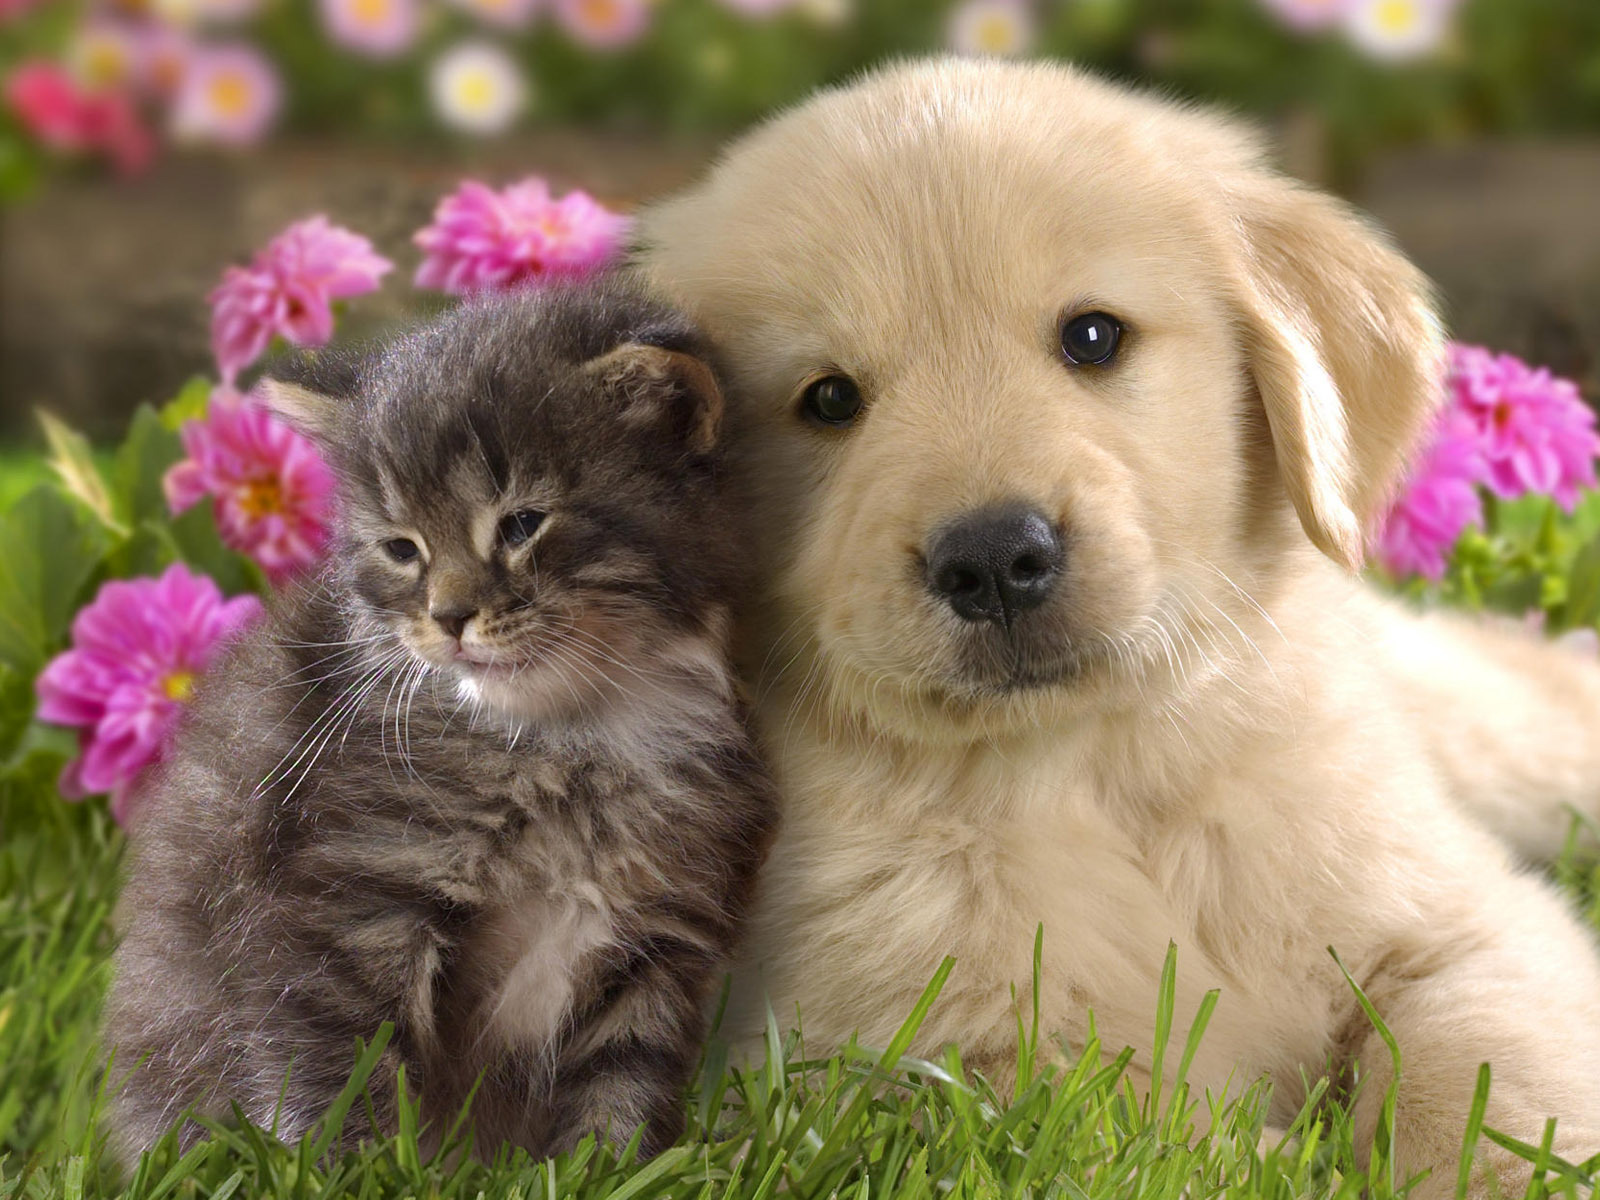 Cute Cat and Dog Friendship HD Wallpaper  HD Nature Wallpapers